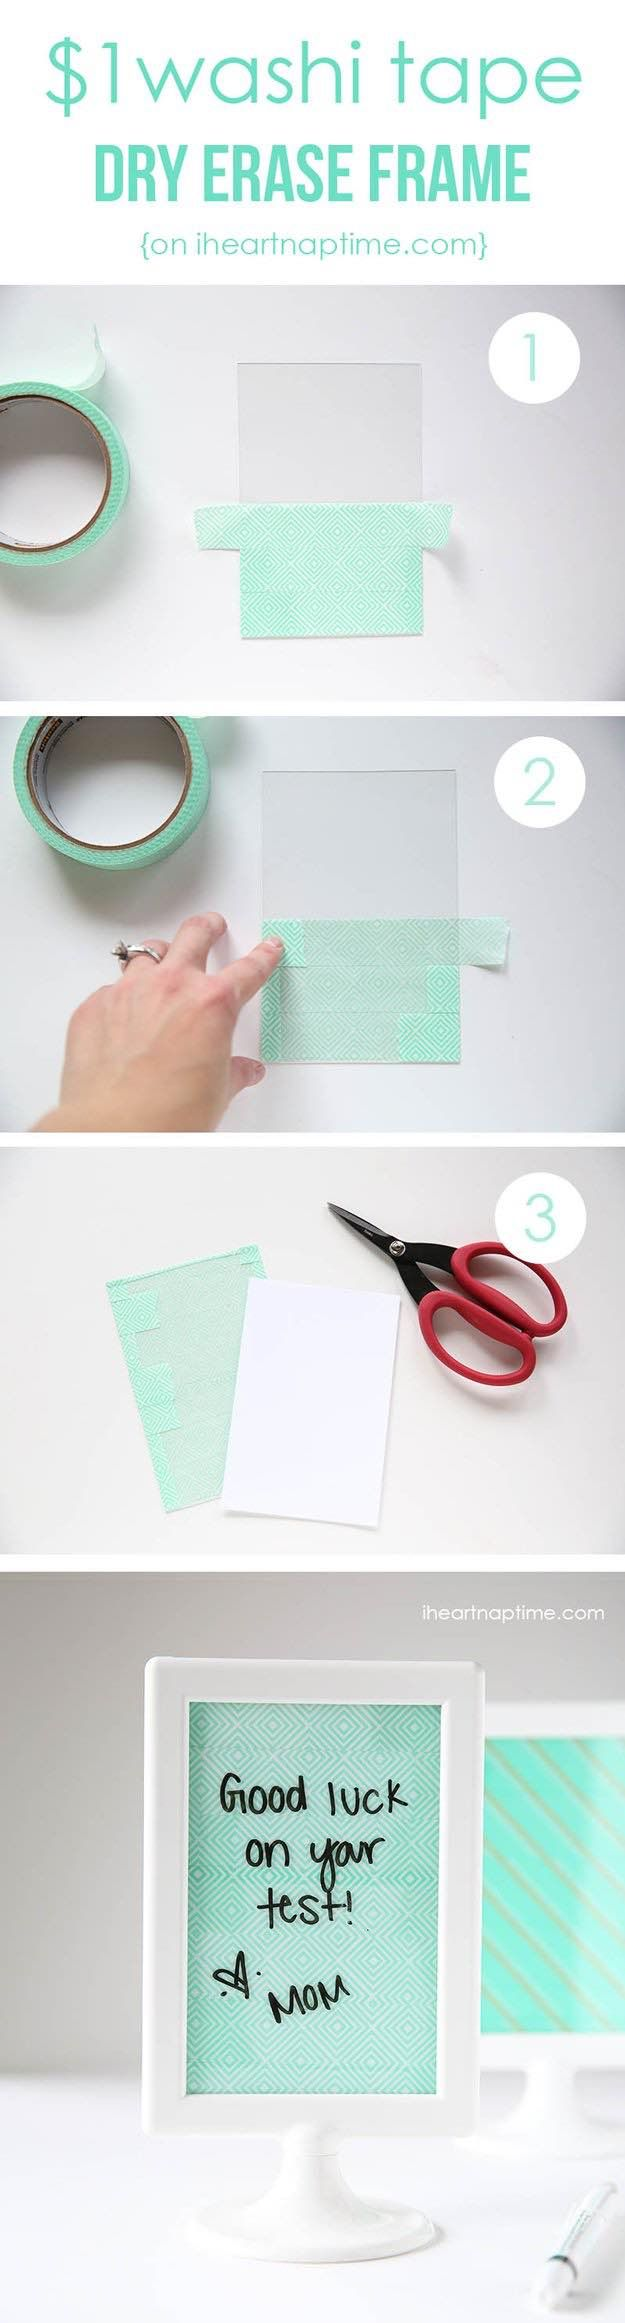 Ready rats diy mini scrapbook my crafts and diy projects - 100 Washi Tape Ideas To Style And Personalize Your Items